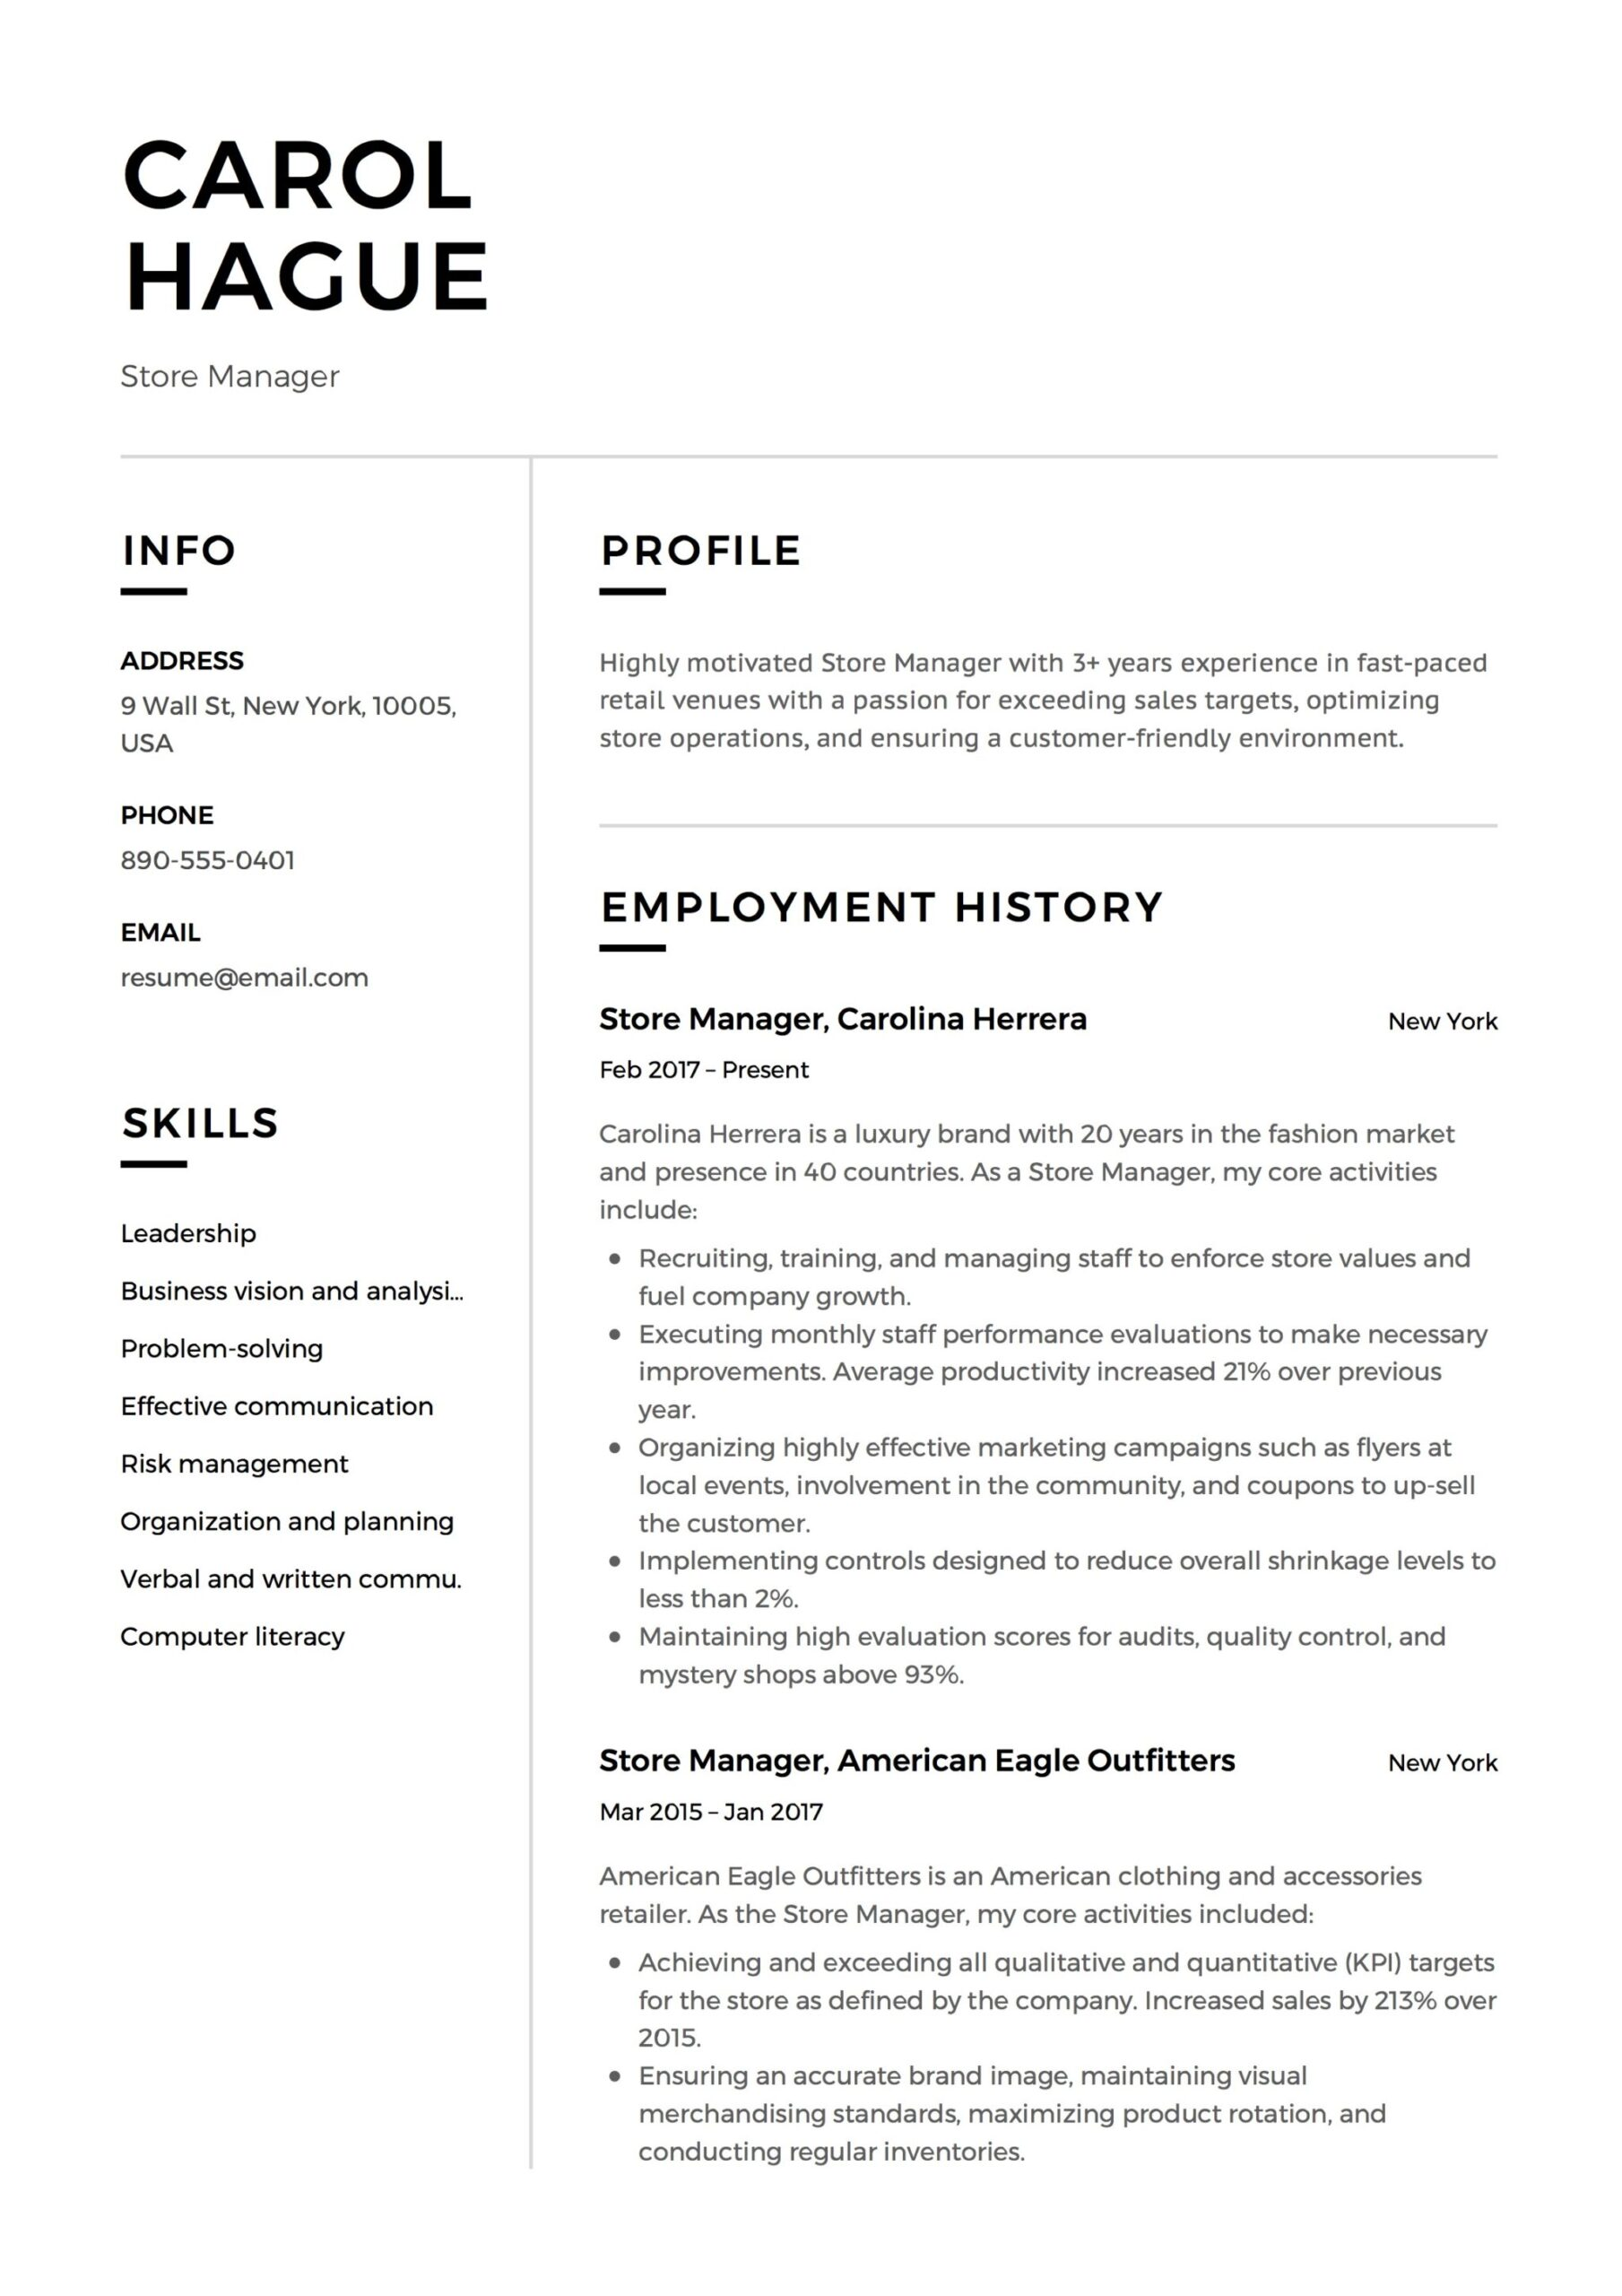 store manager resume guide samples pdf retail department examples sample template kfc Resume Retail Department Manager Resume Examples